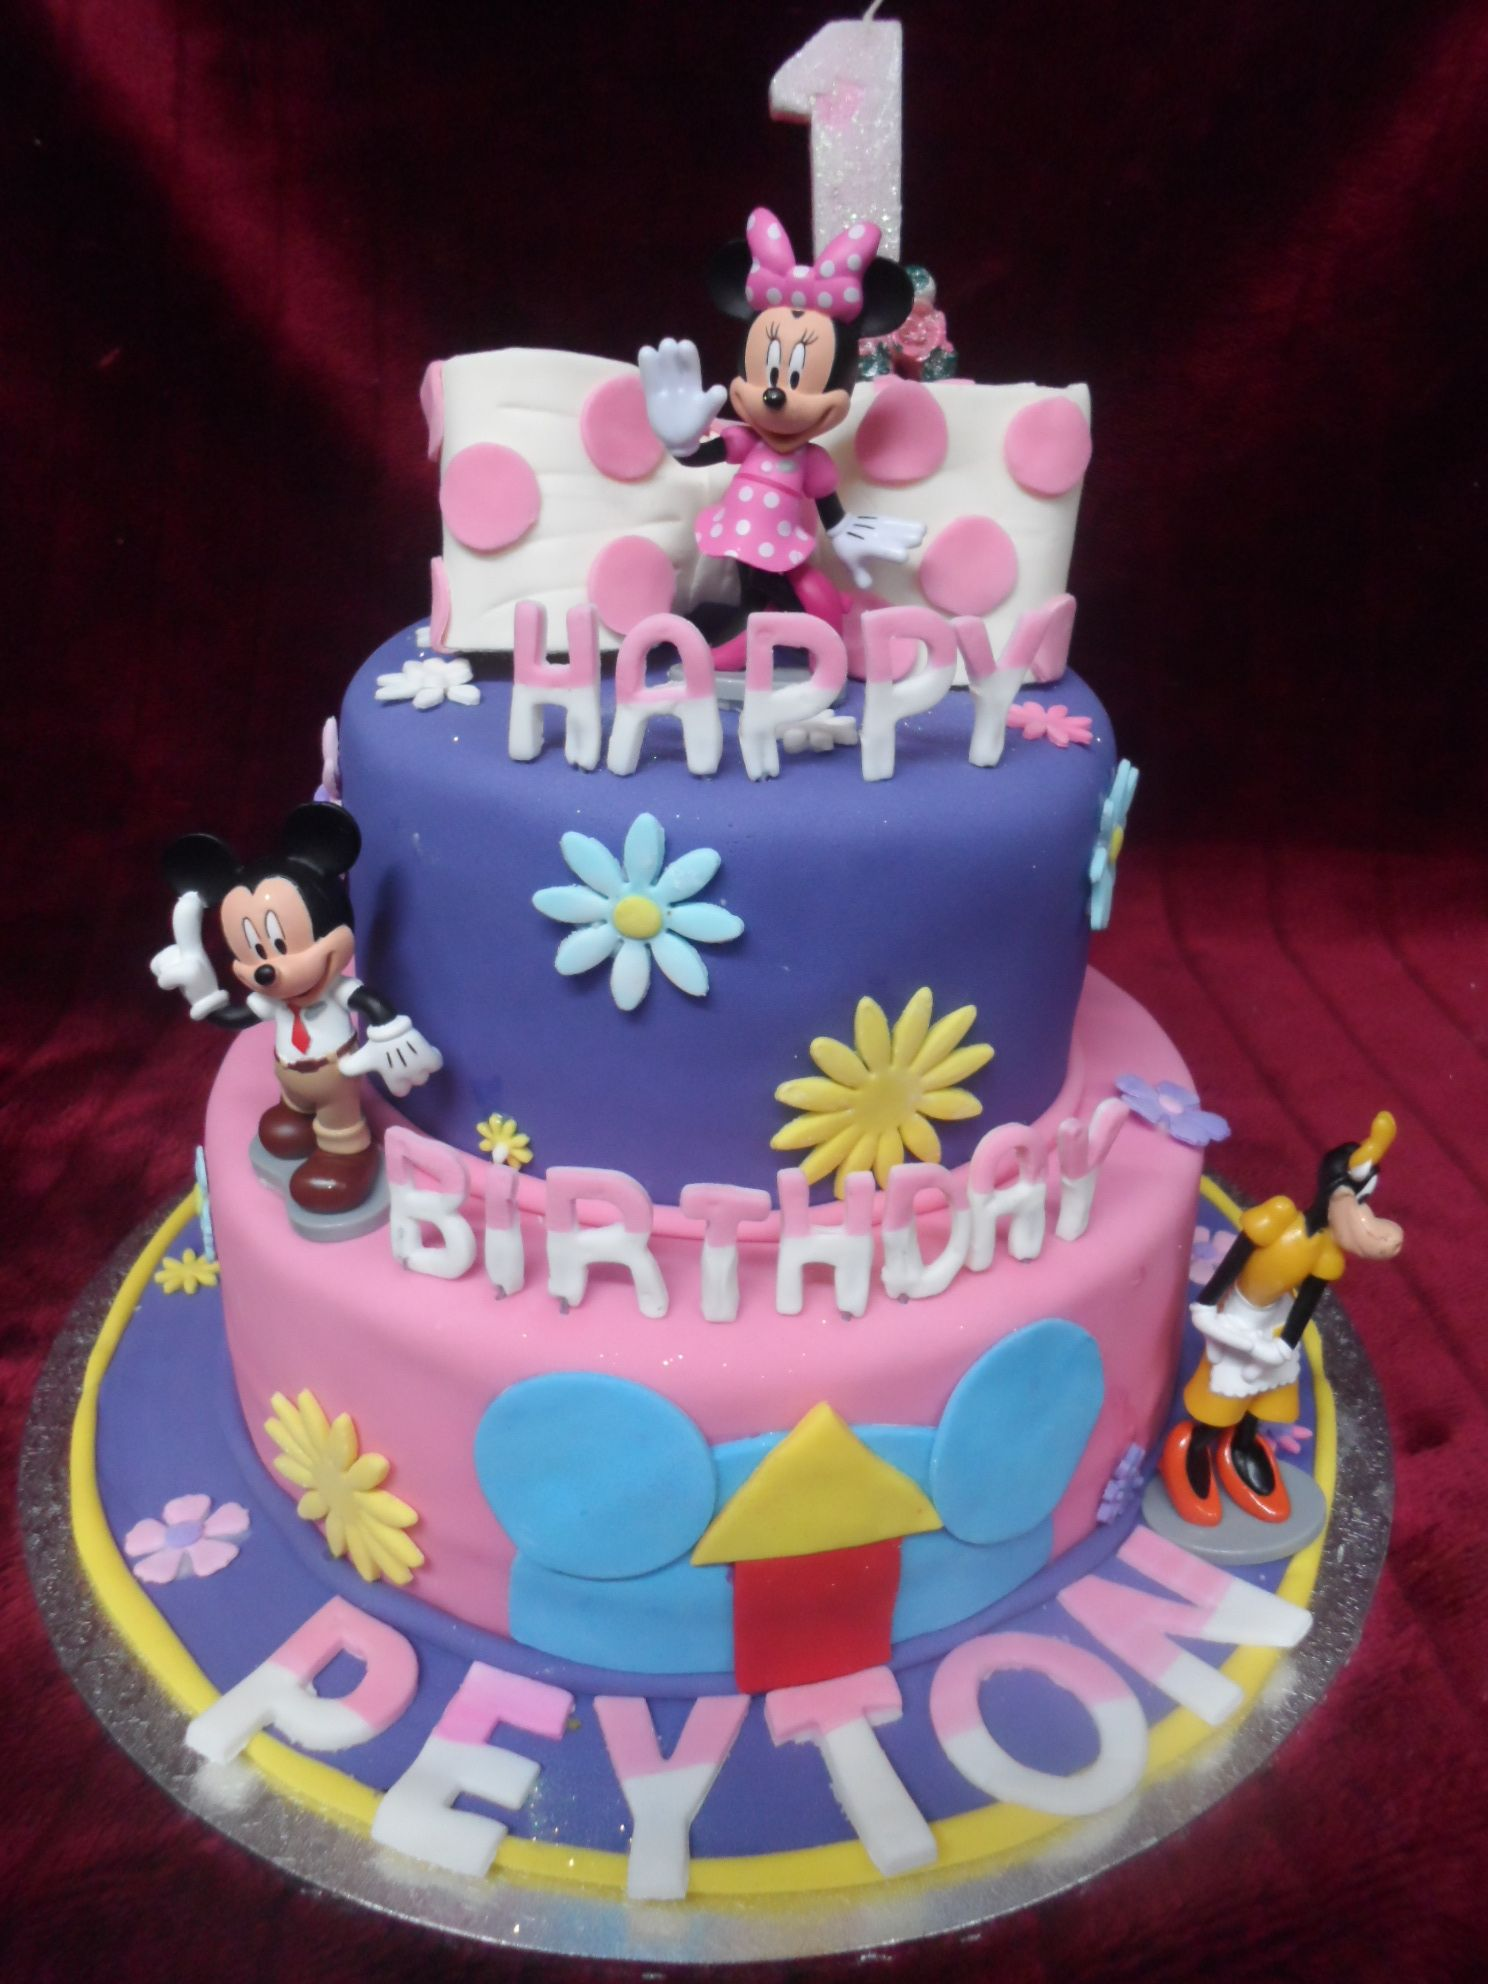 MINNIE MOUSE 2 TIERED BIRTHDAY CAKE wwwfrescofoodsconz Email